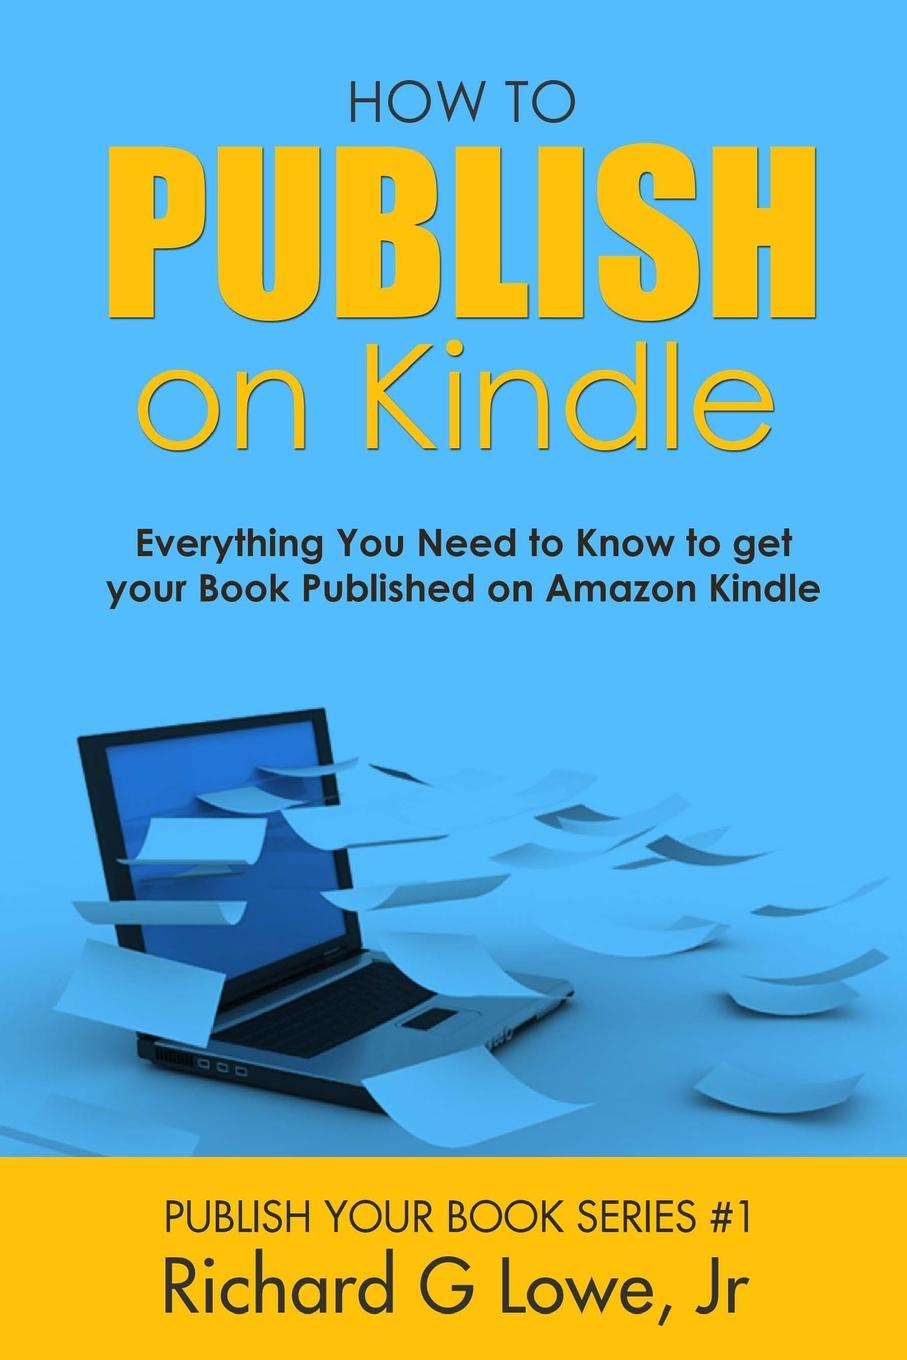 Richard G Lowe Jr How to Publish on Kindle. Everything You Need to Know to get your Book Published on Amazon Kindle jeffrey condon l aarp the living trust advisor everything you need to know about your living trust